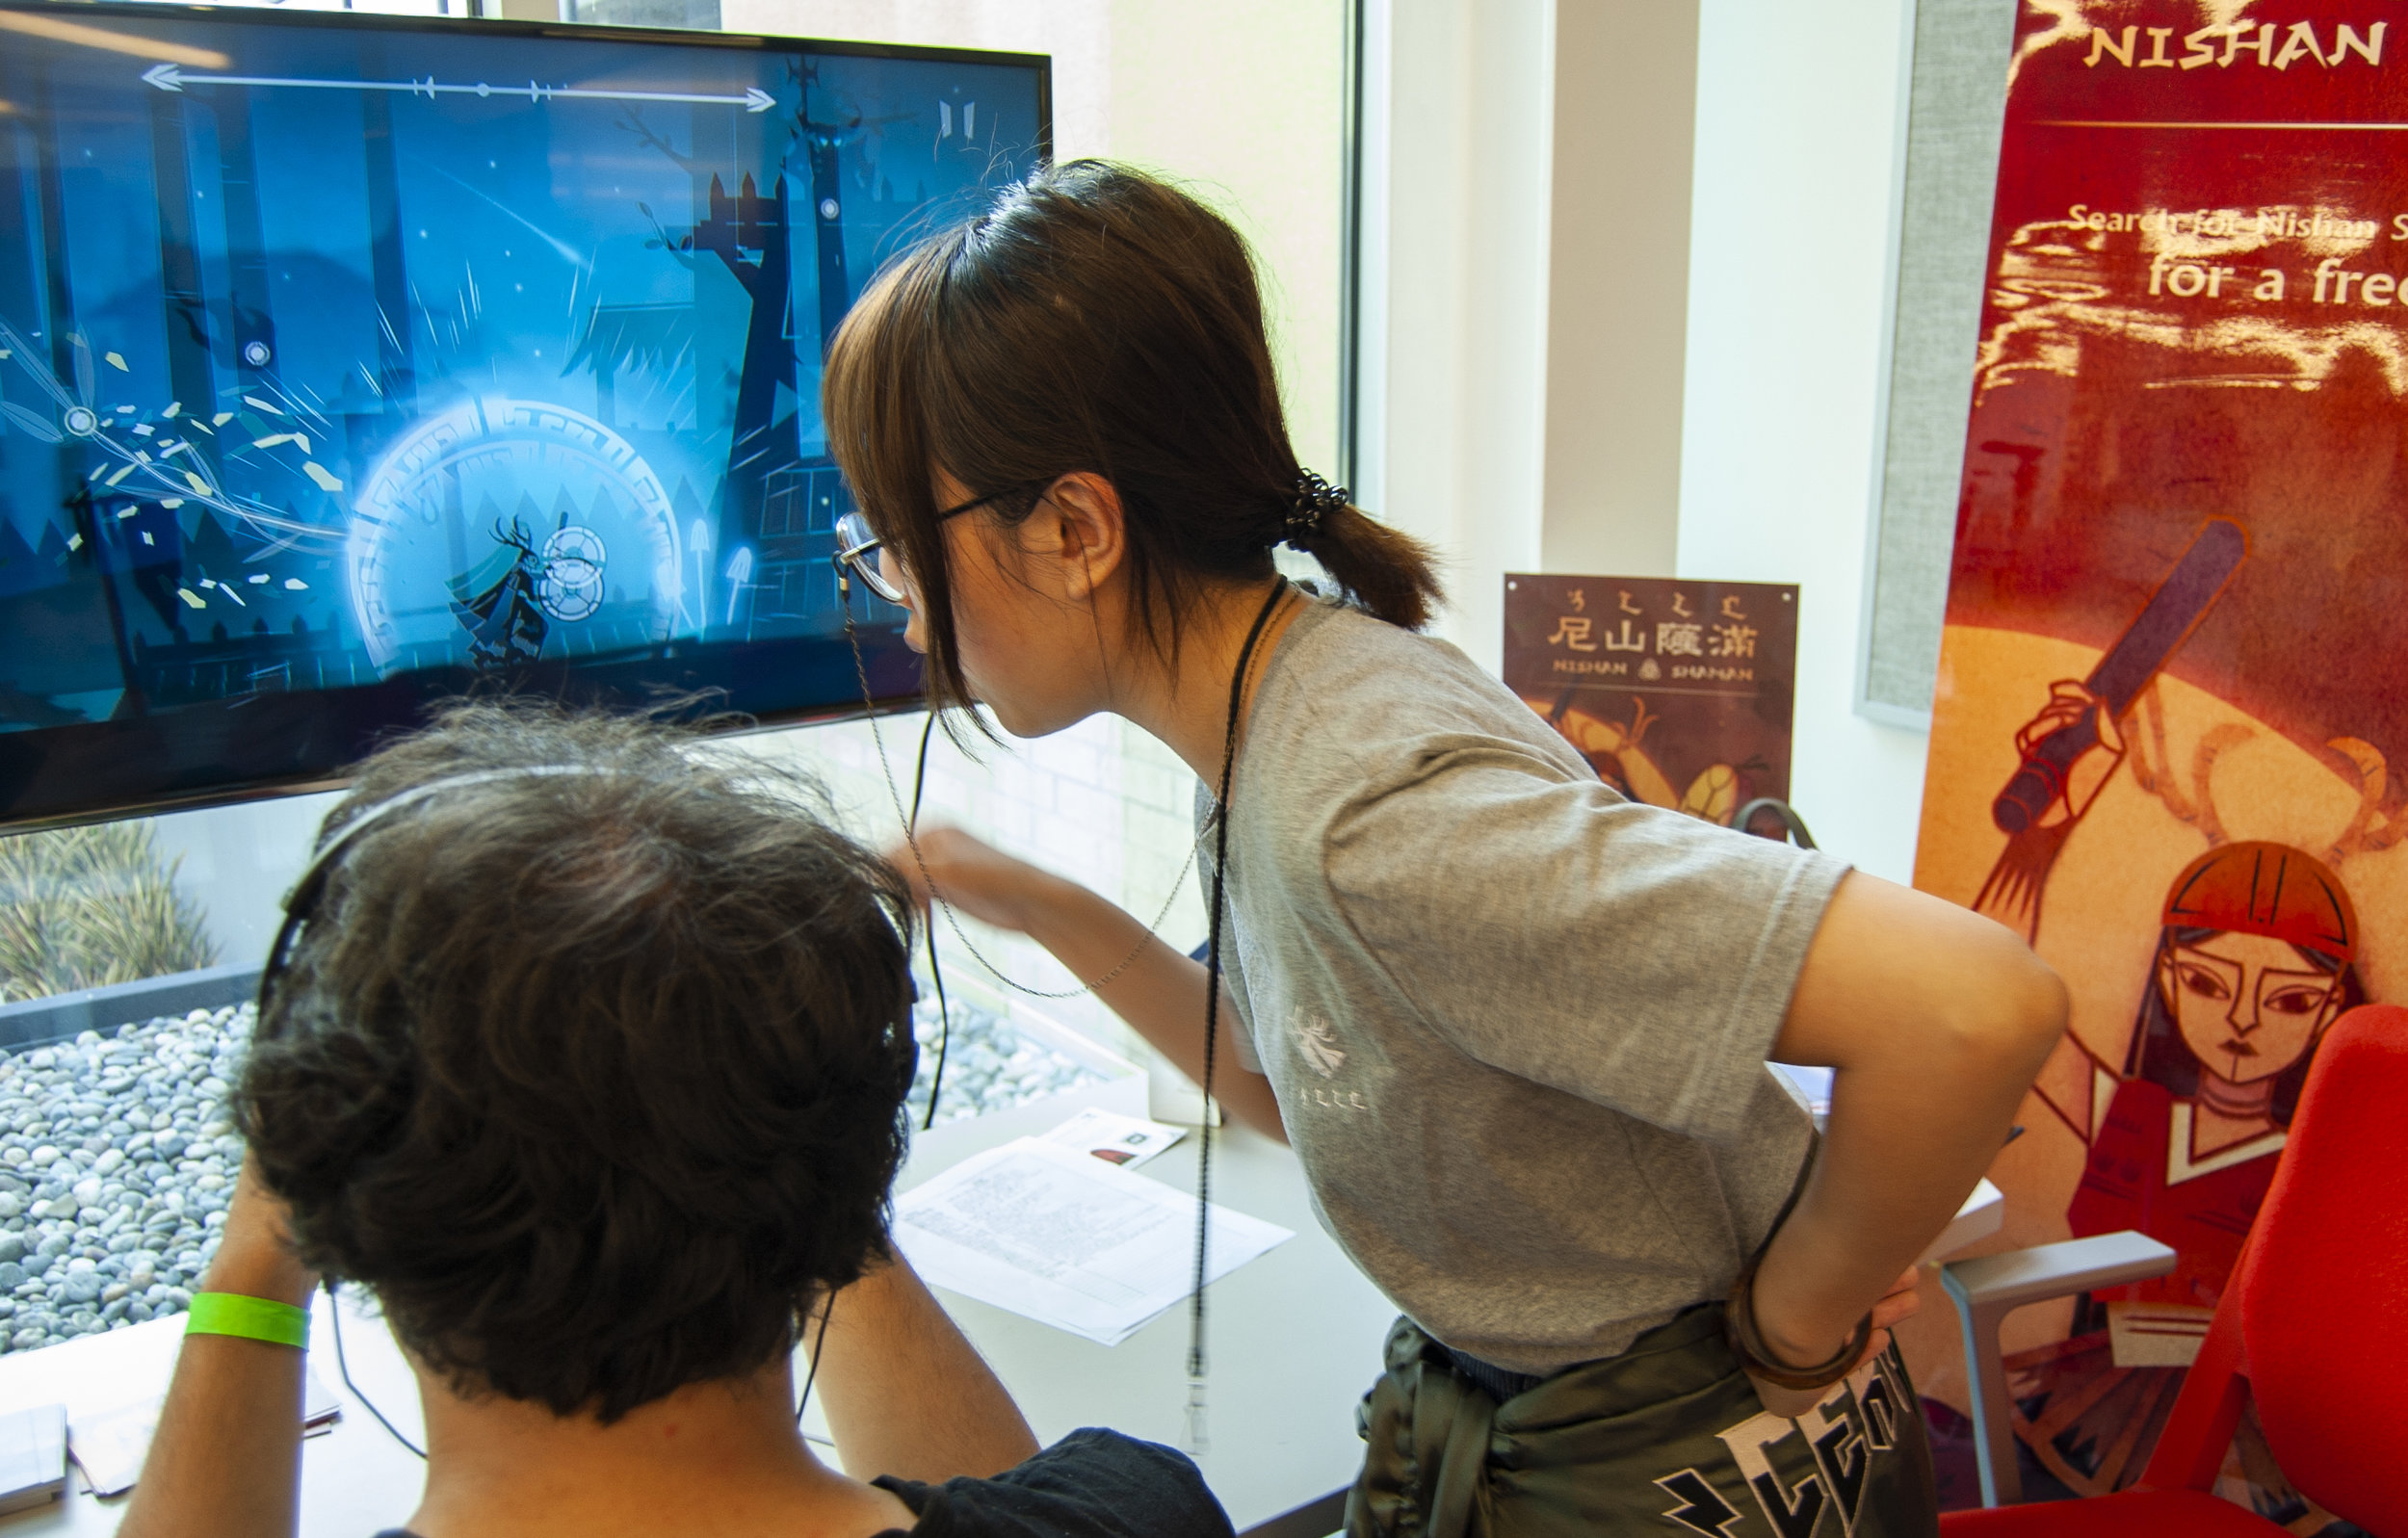 Xiao Feng, Artist/designer, Nishan Shaman game, helps a player p